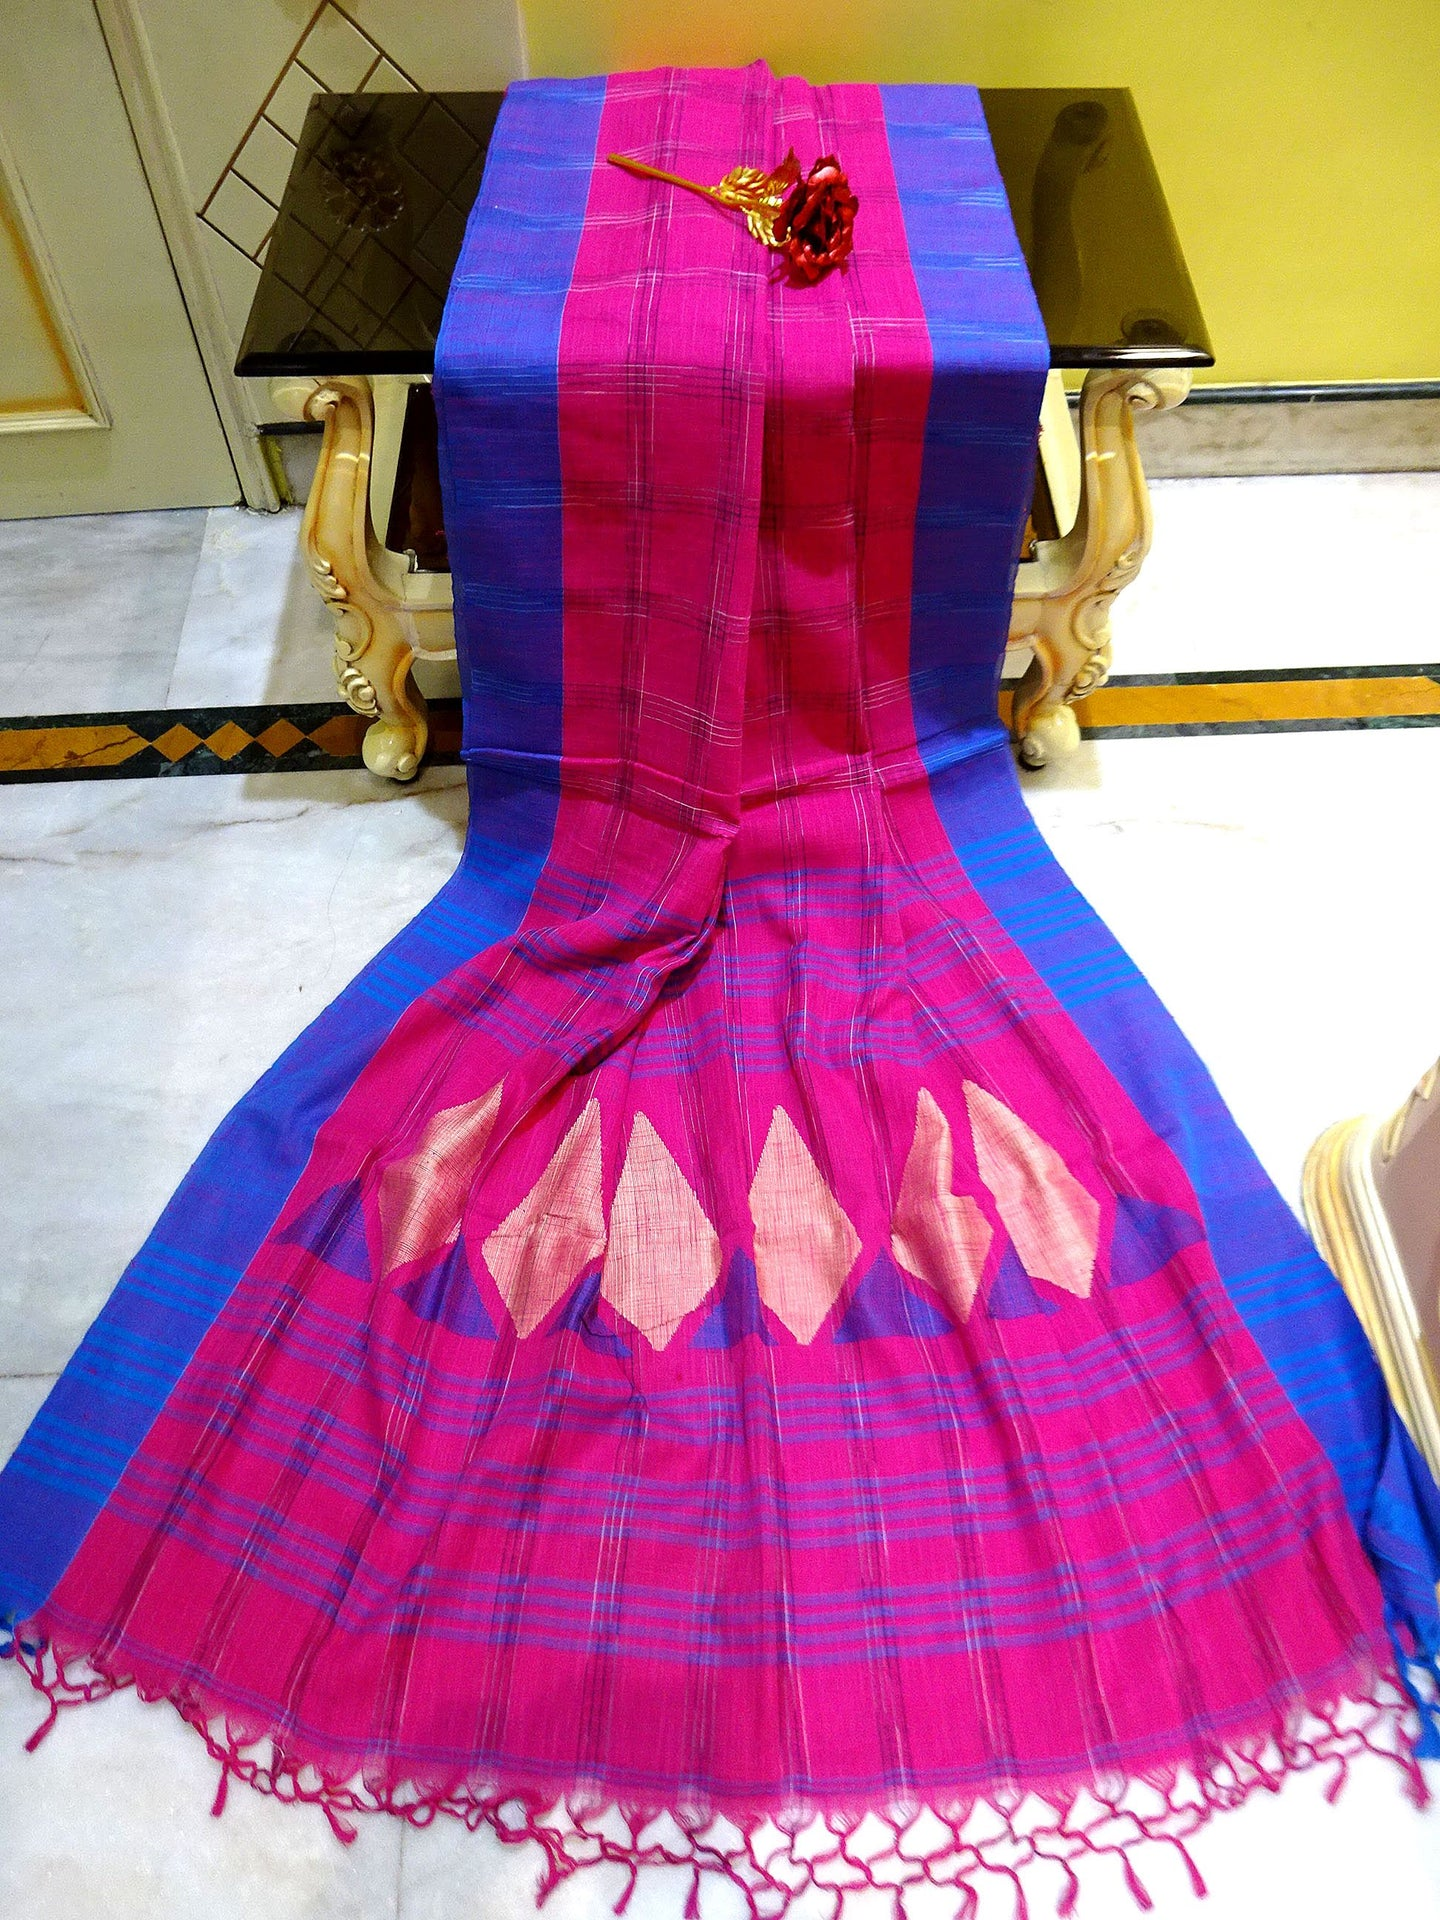 Kotki Checks Khadi Soft Cotton Saree in Hot Pink and Blue from Bengal Looms India